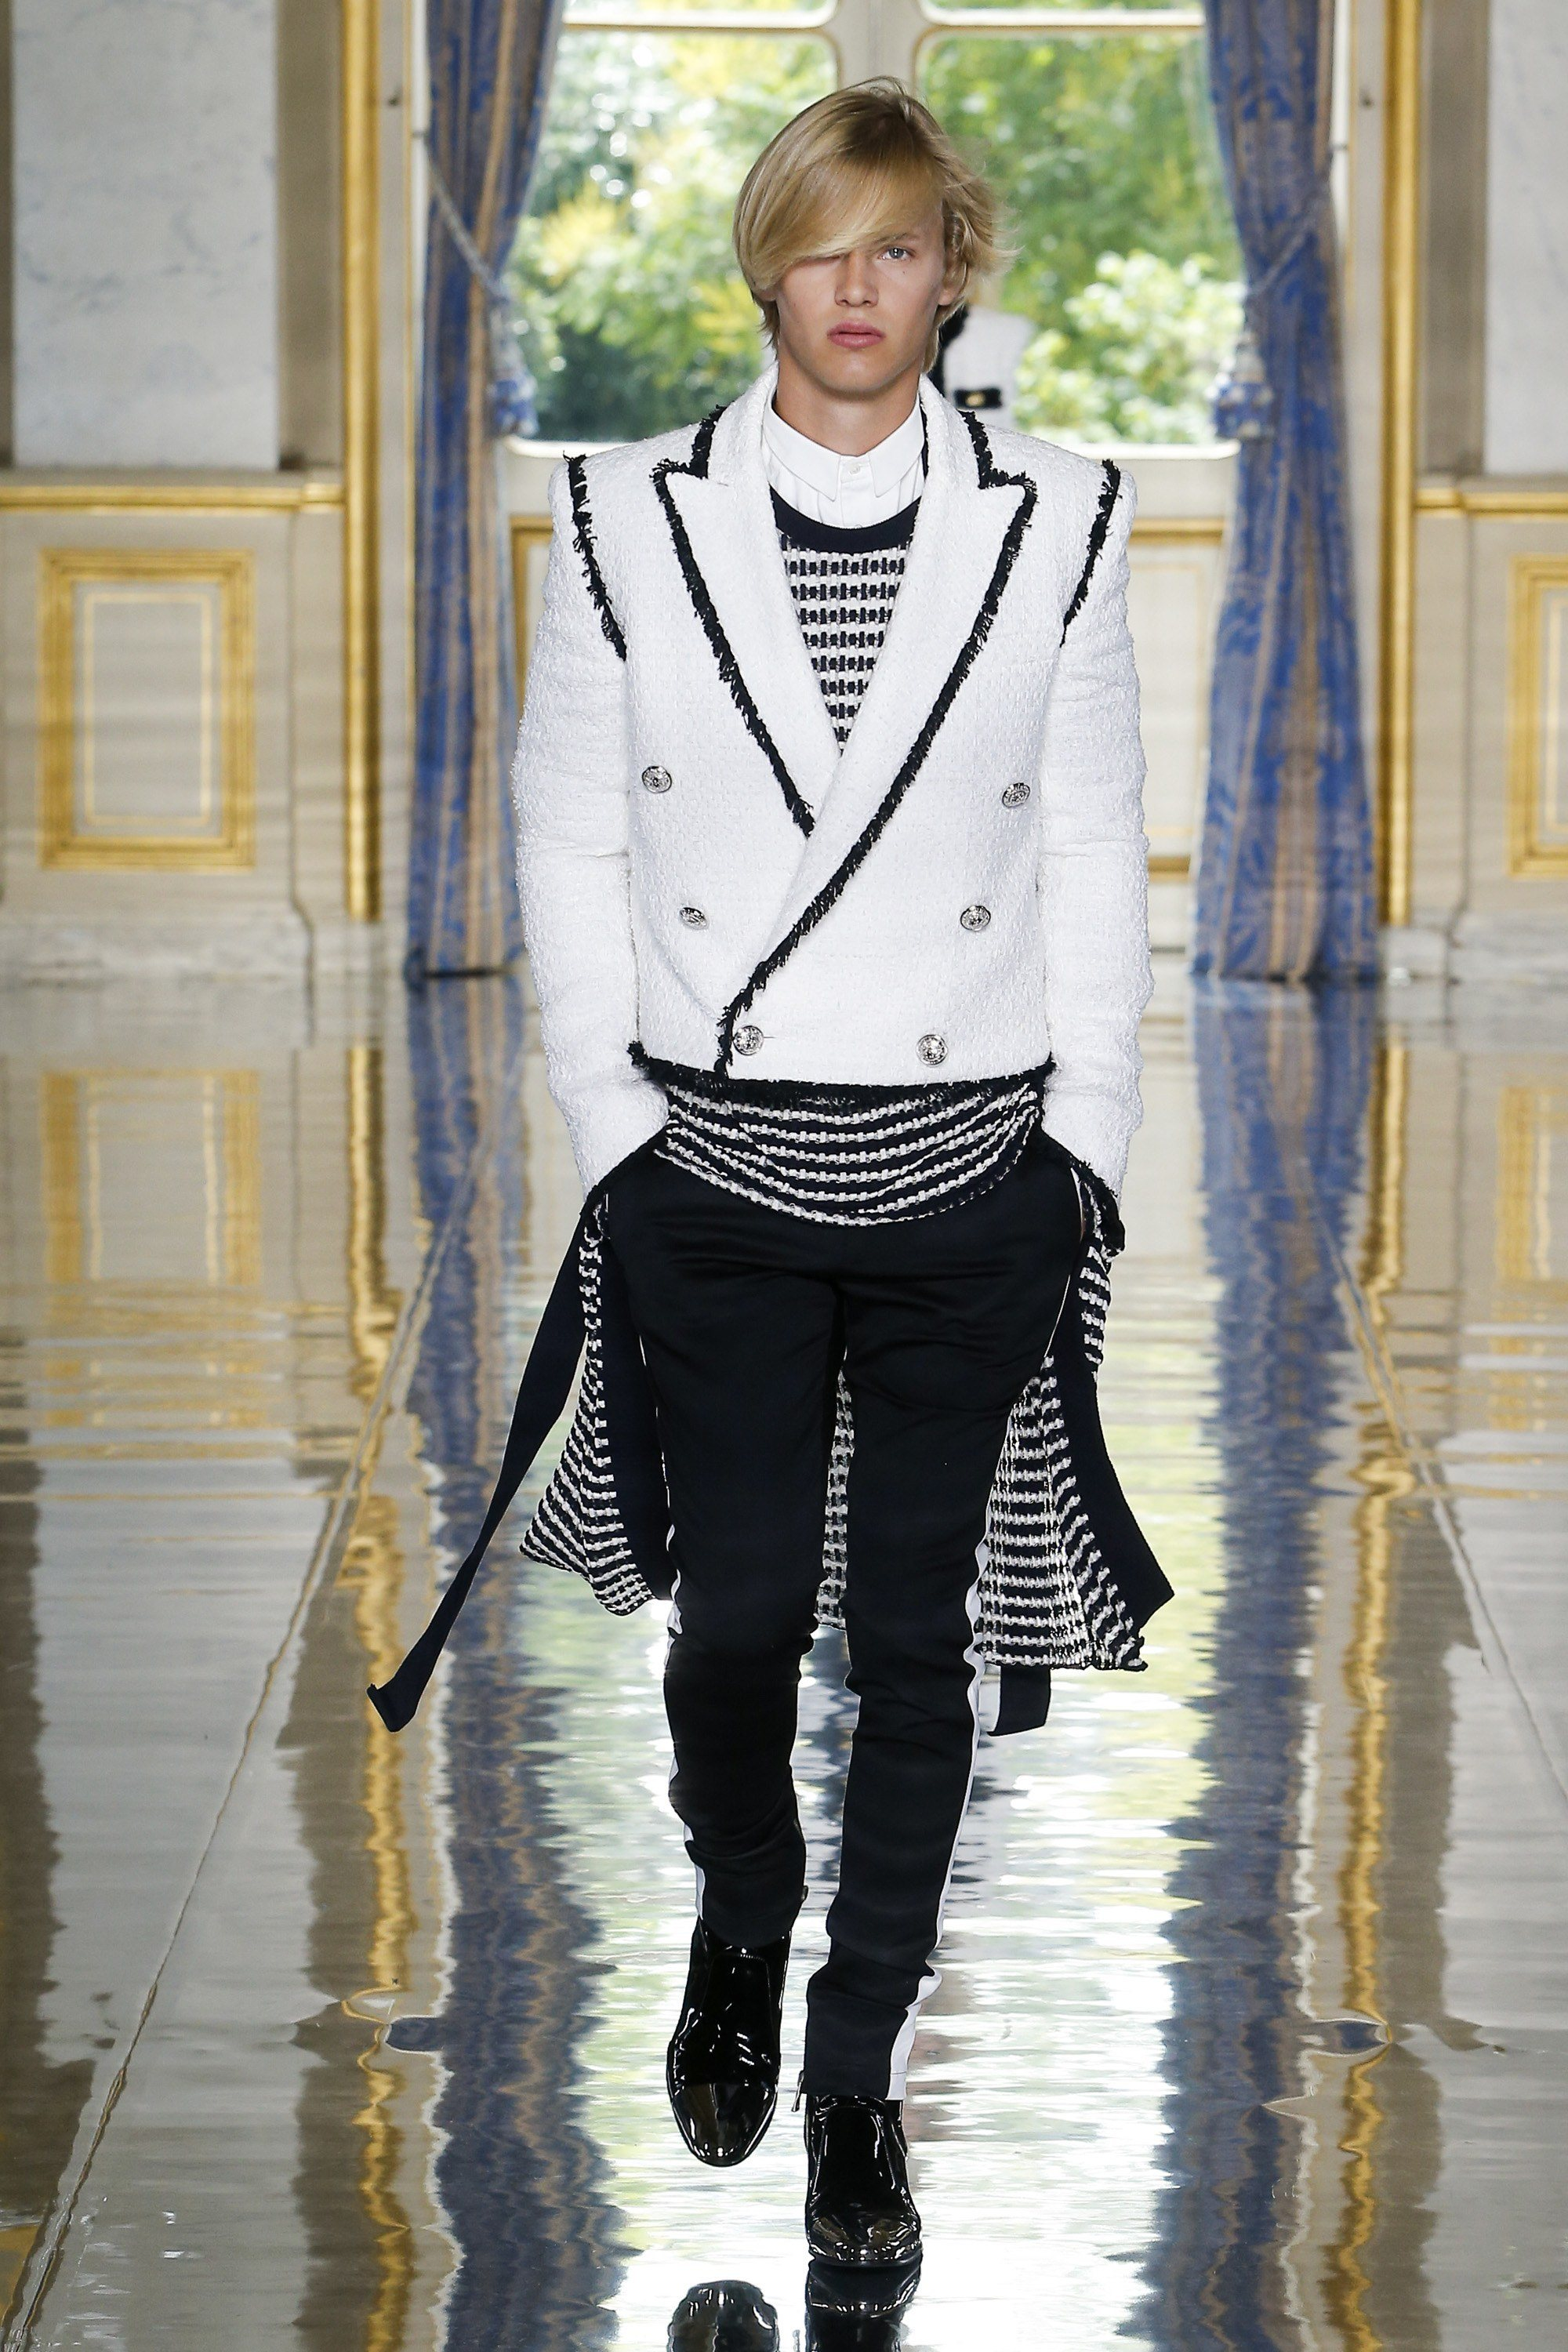 Balmain Spring 2019 Runway Double-Breasted Jacket trend